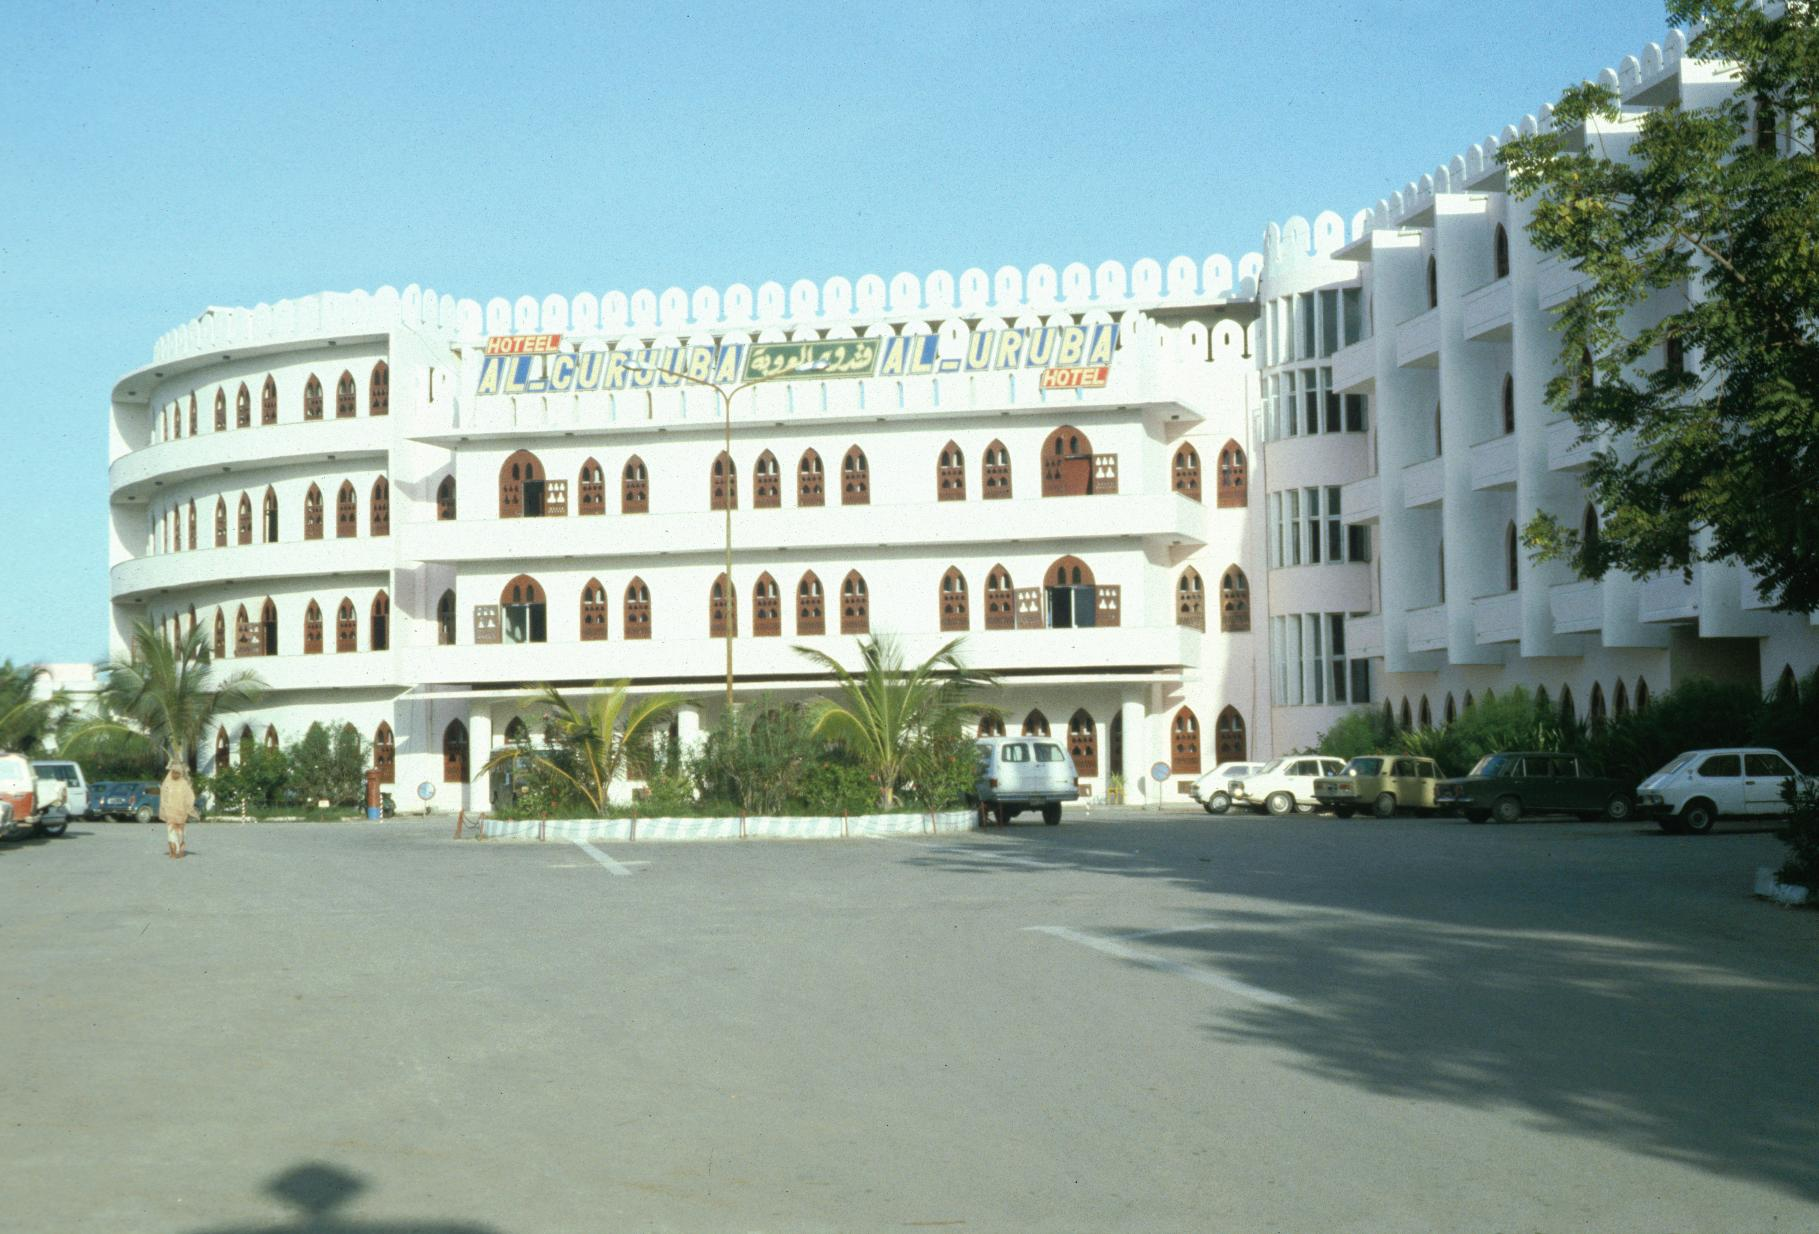 Front View of Hotel and Museum, Formerly the Sultan's Palace